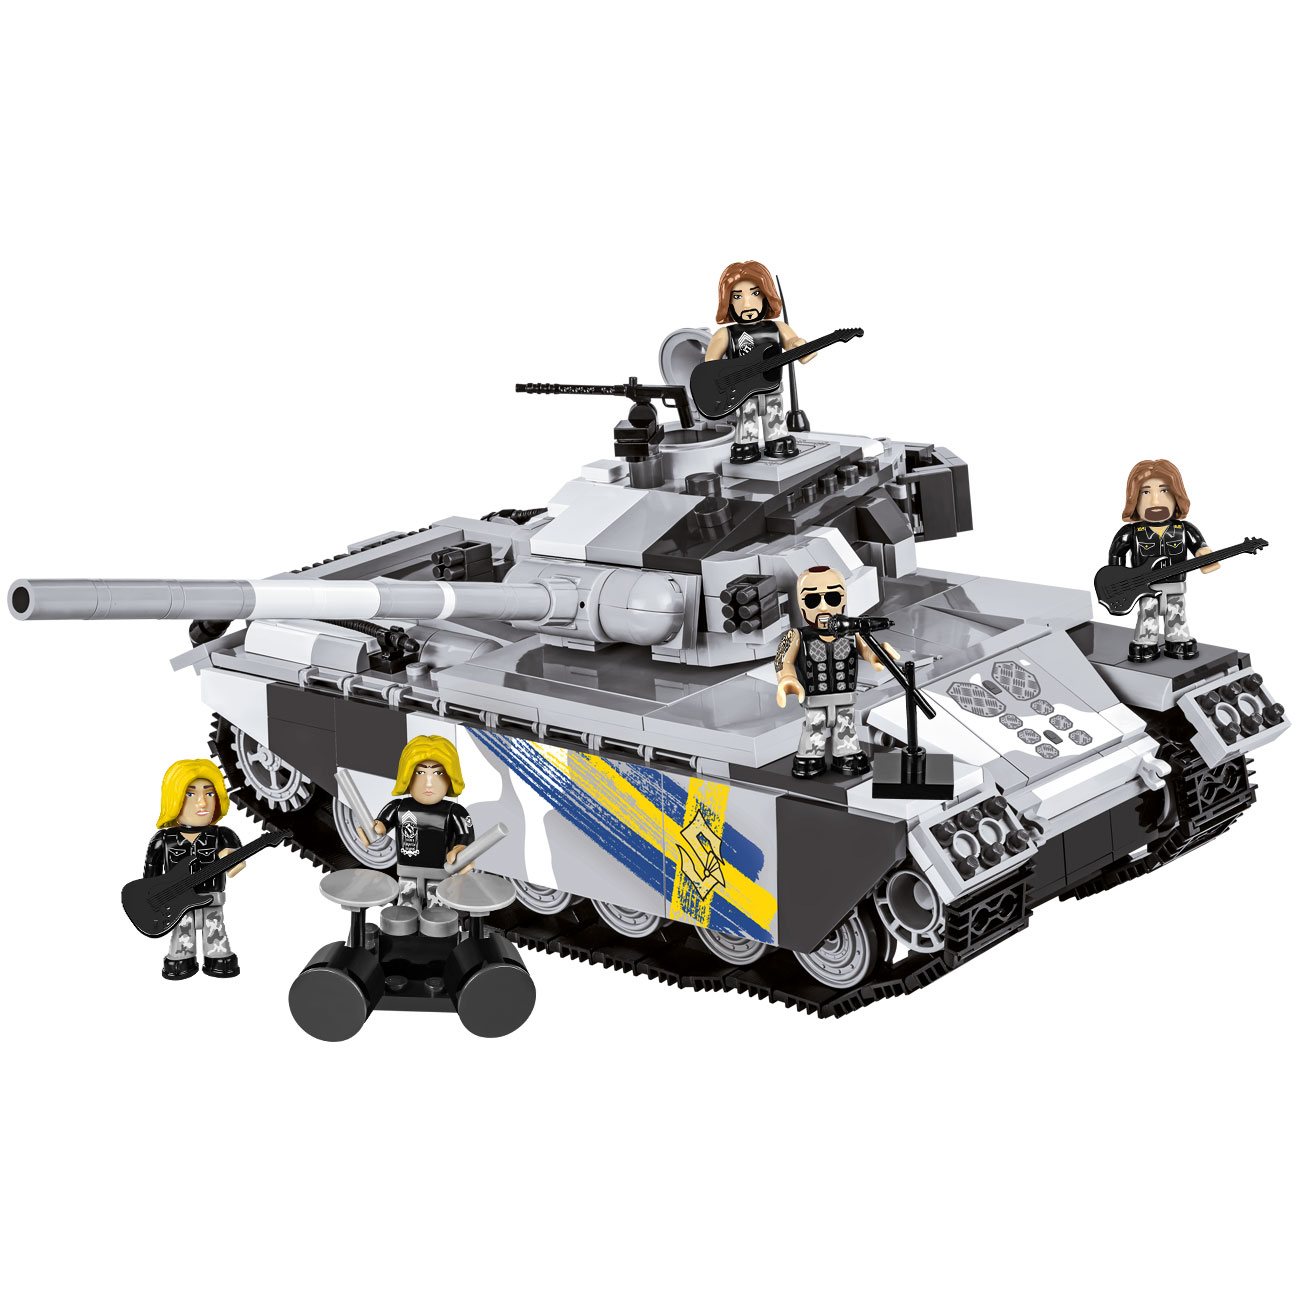 Cobi World Of Tanks Bau Panzer Sabaton Primo Victoria 675 Teile 3034 0